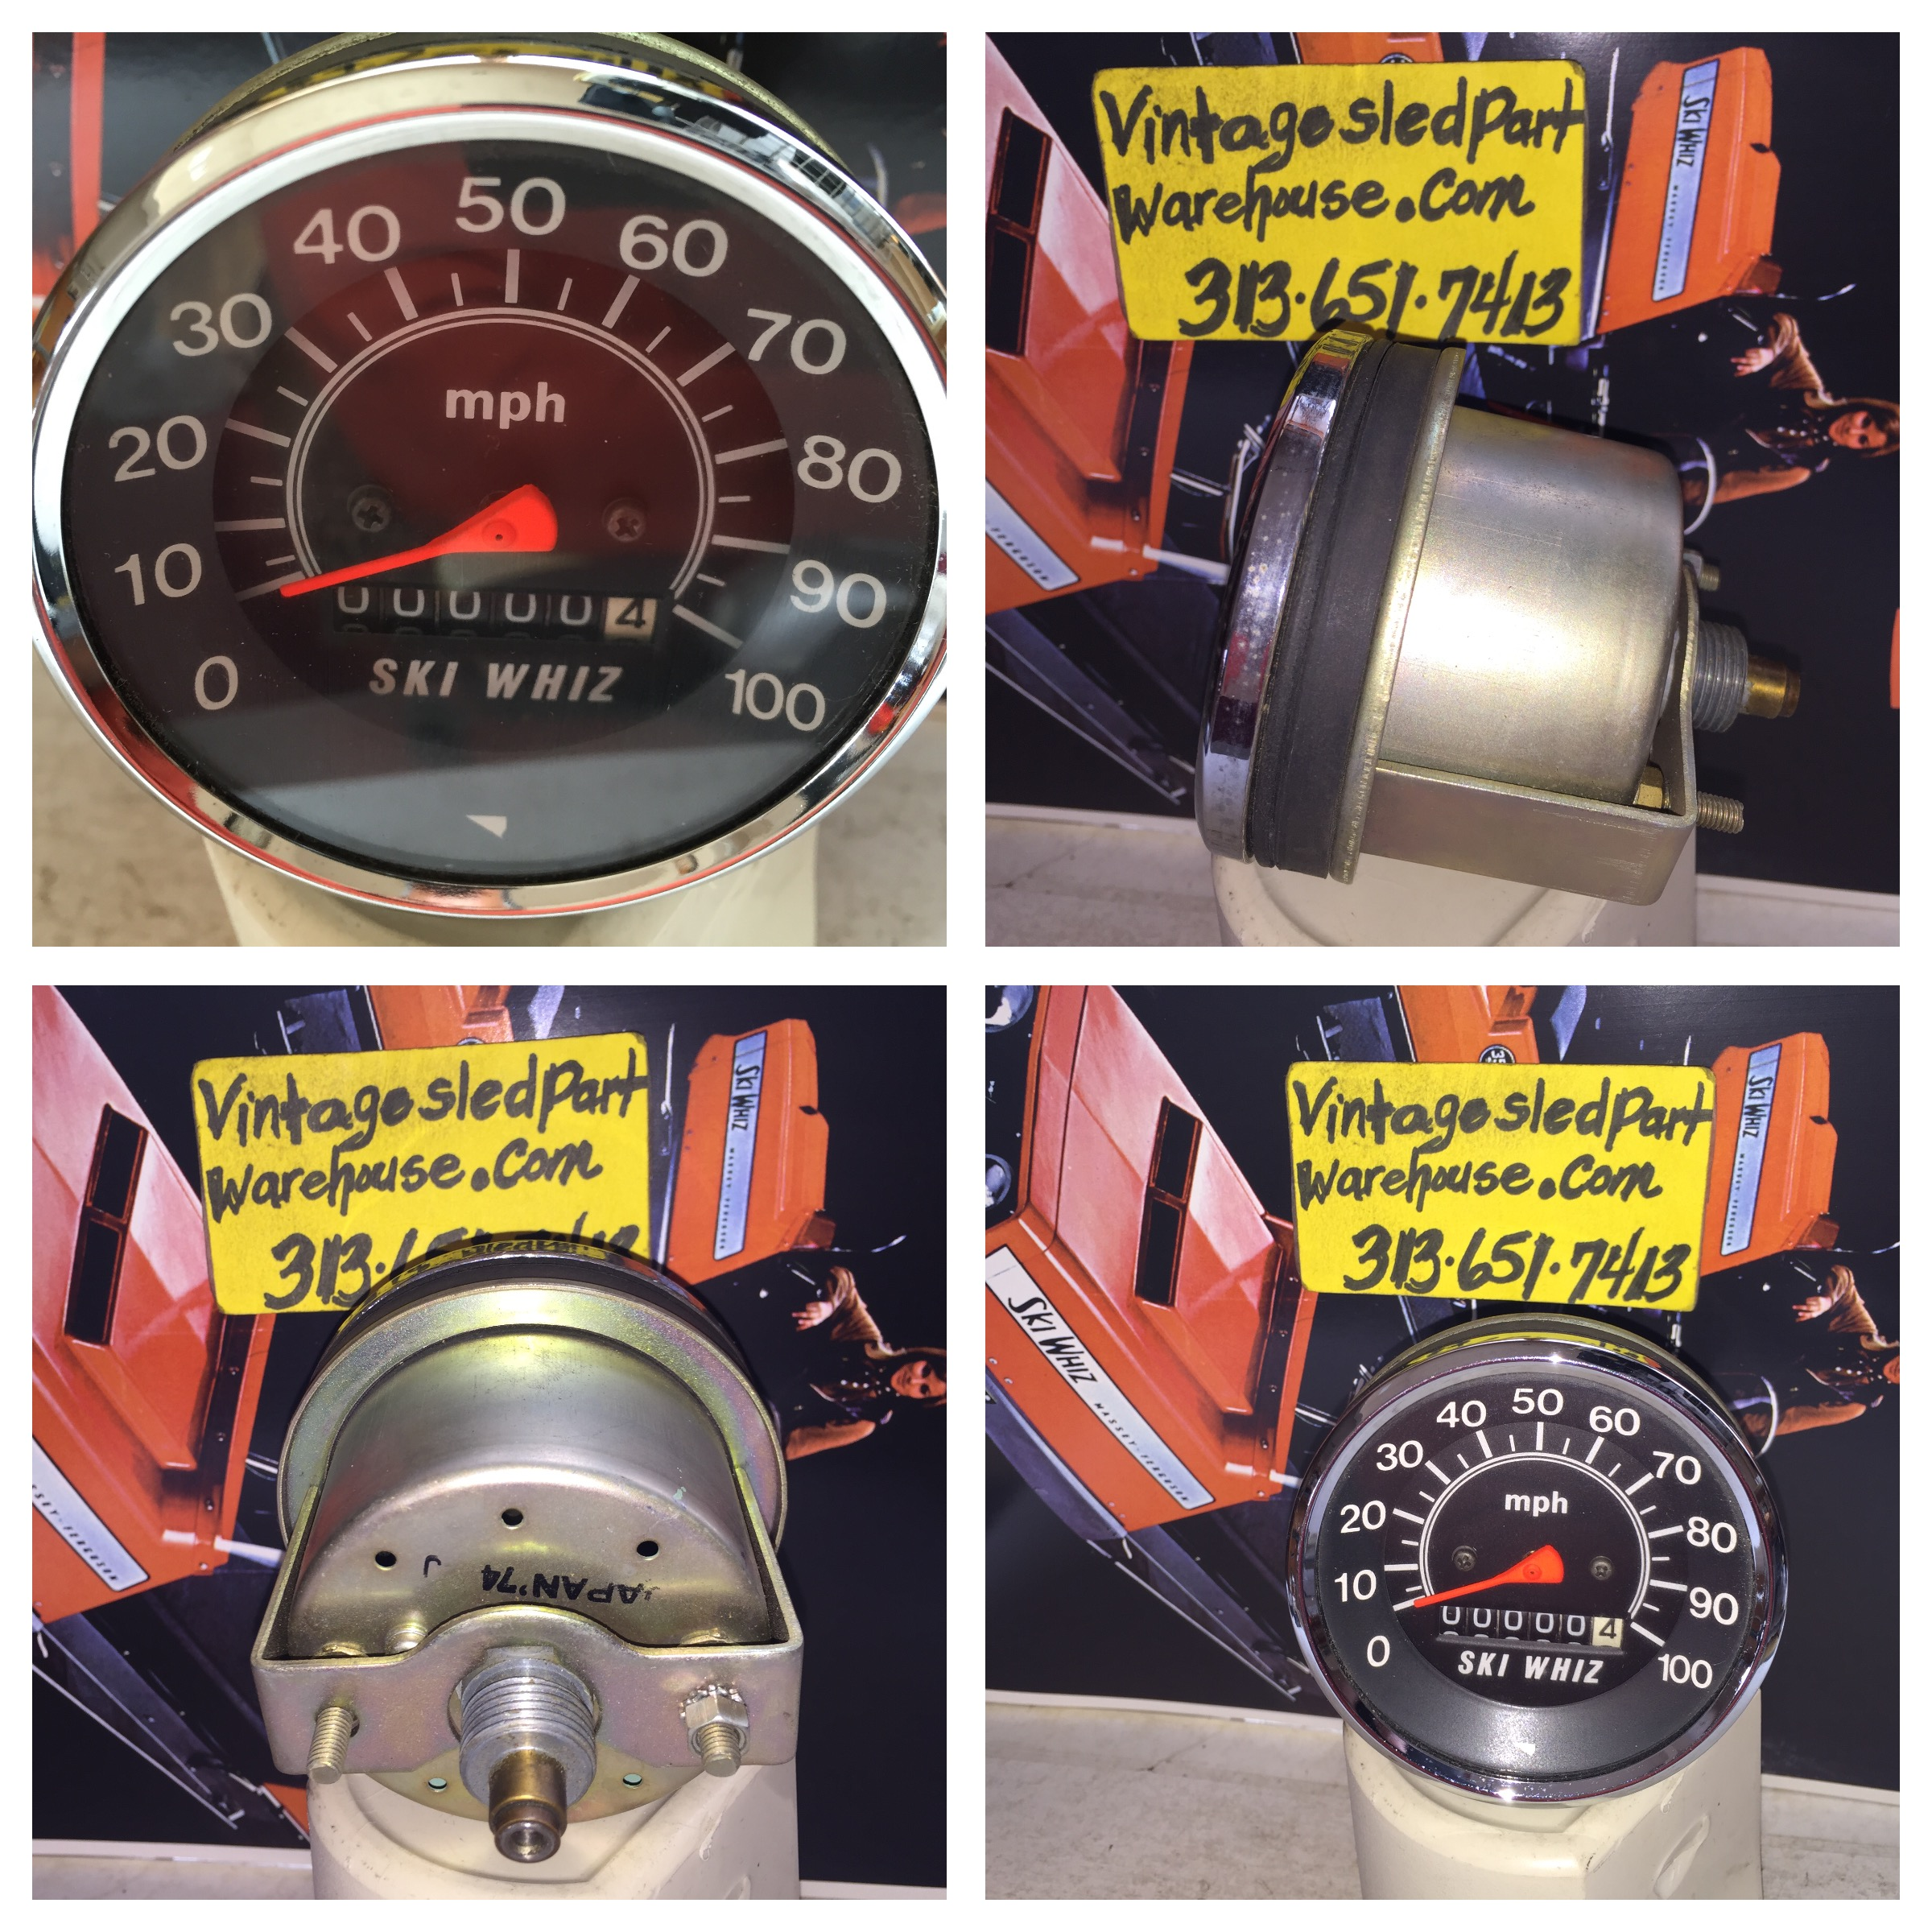 Ski whiz snowmobiles for sale - Vintage Massey Ferguson Ski Whiz Speedometer Vintage Ski Whiz Speedometer Storm Sst Whirlwind Jlo Rockwell Engines Vintage Snowmobiles